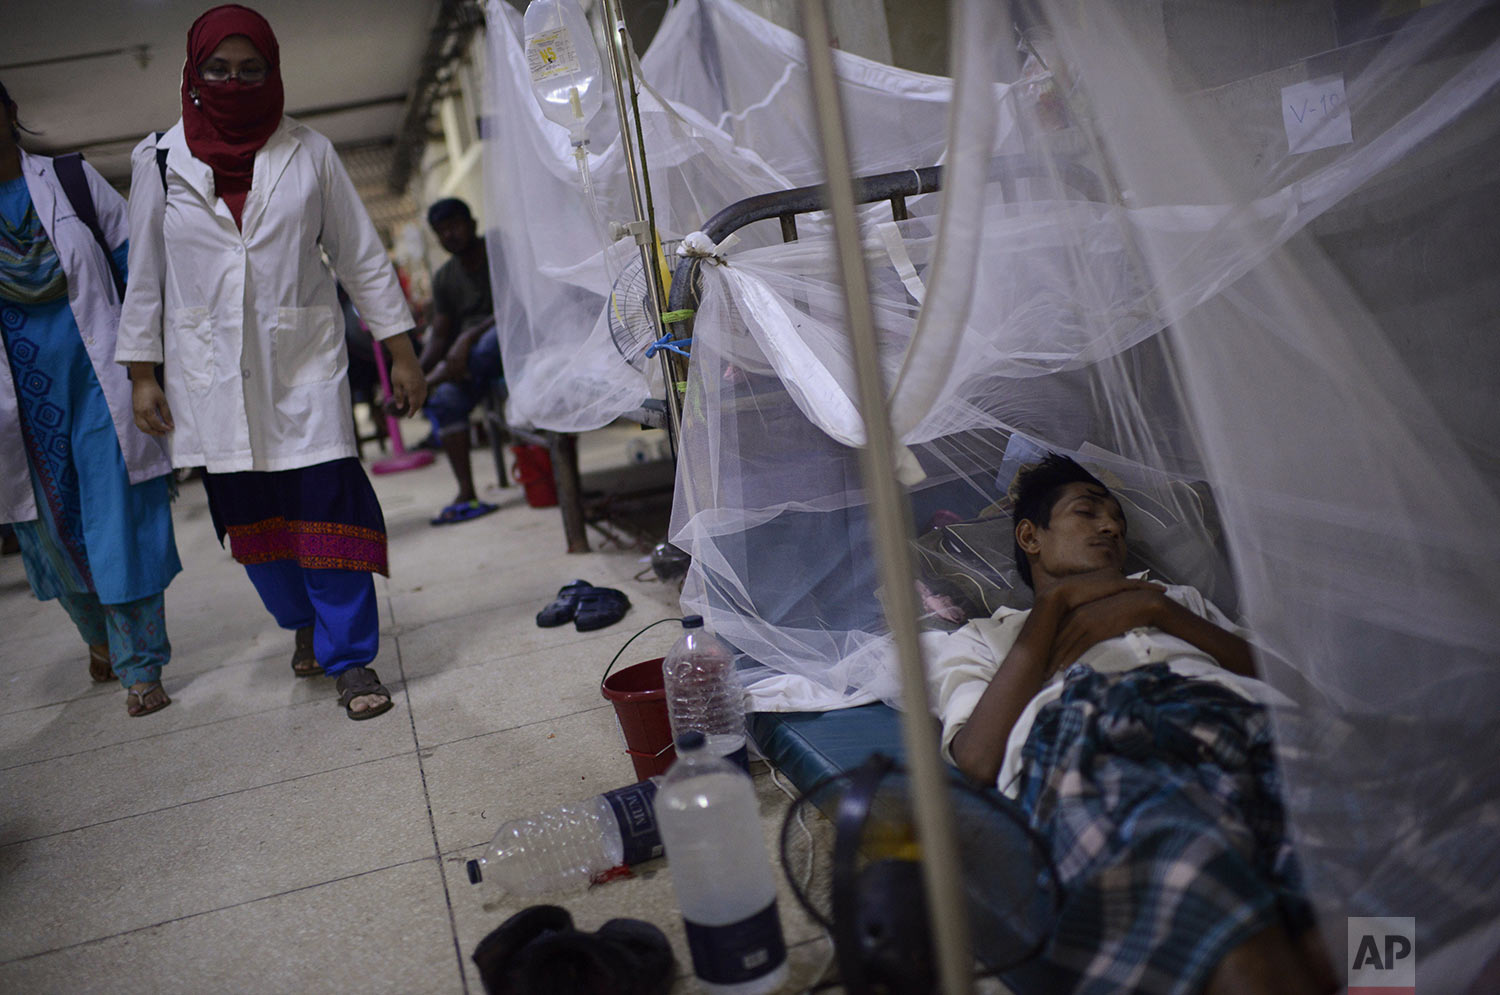 A medical officer walks past patients receiving treatment for dengue at Shaheed Suhrawardy Medical College and Hospital in Dhaka, Bangladesh, Wednesday, July 31, 2019. (AP Photo/Mahmud Hossain Opu)